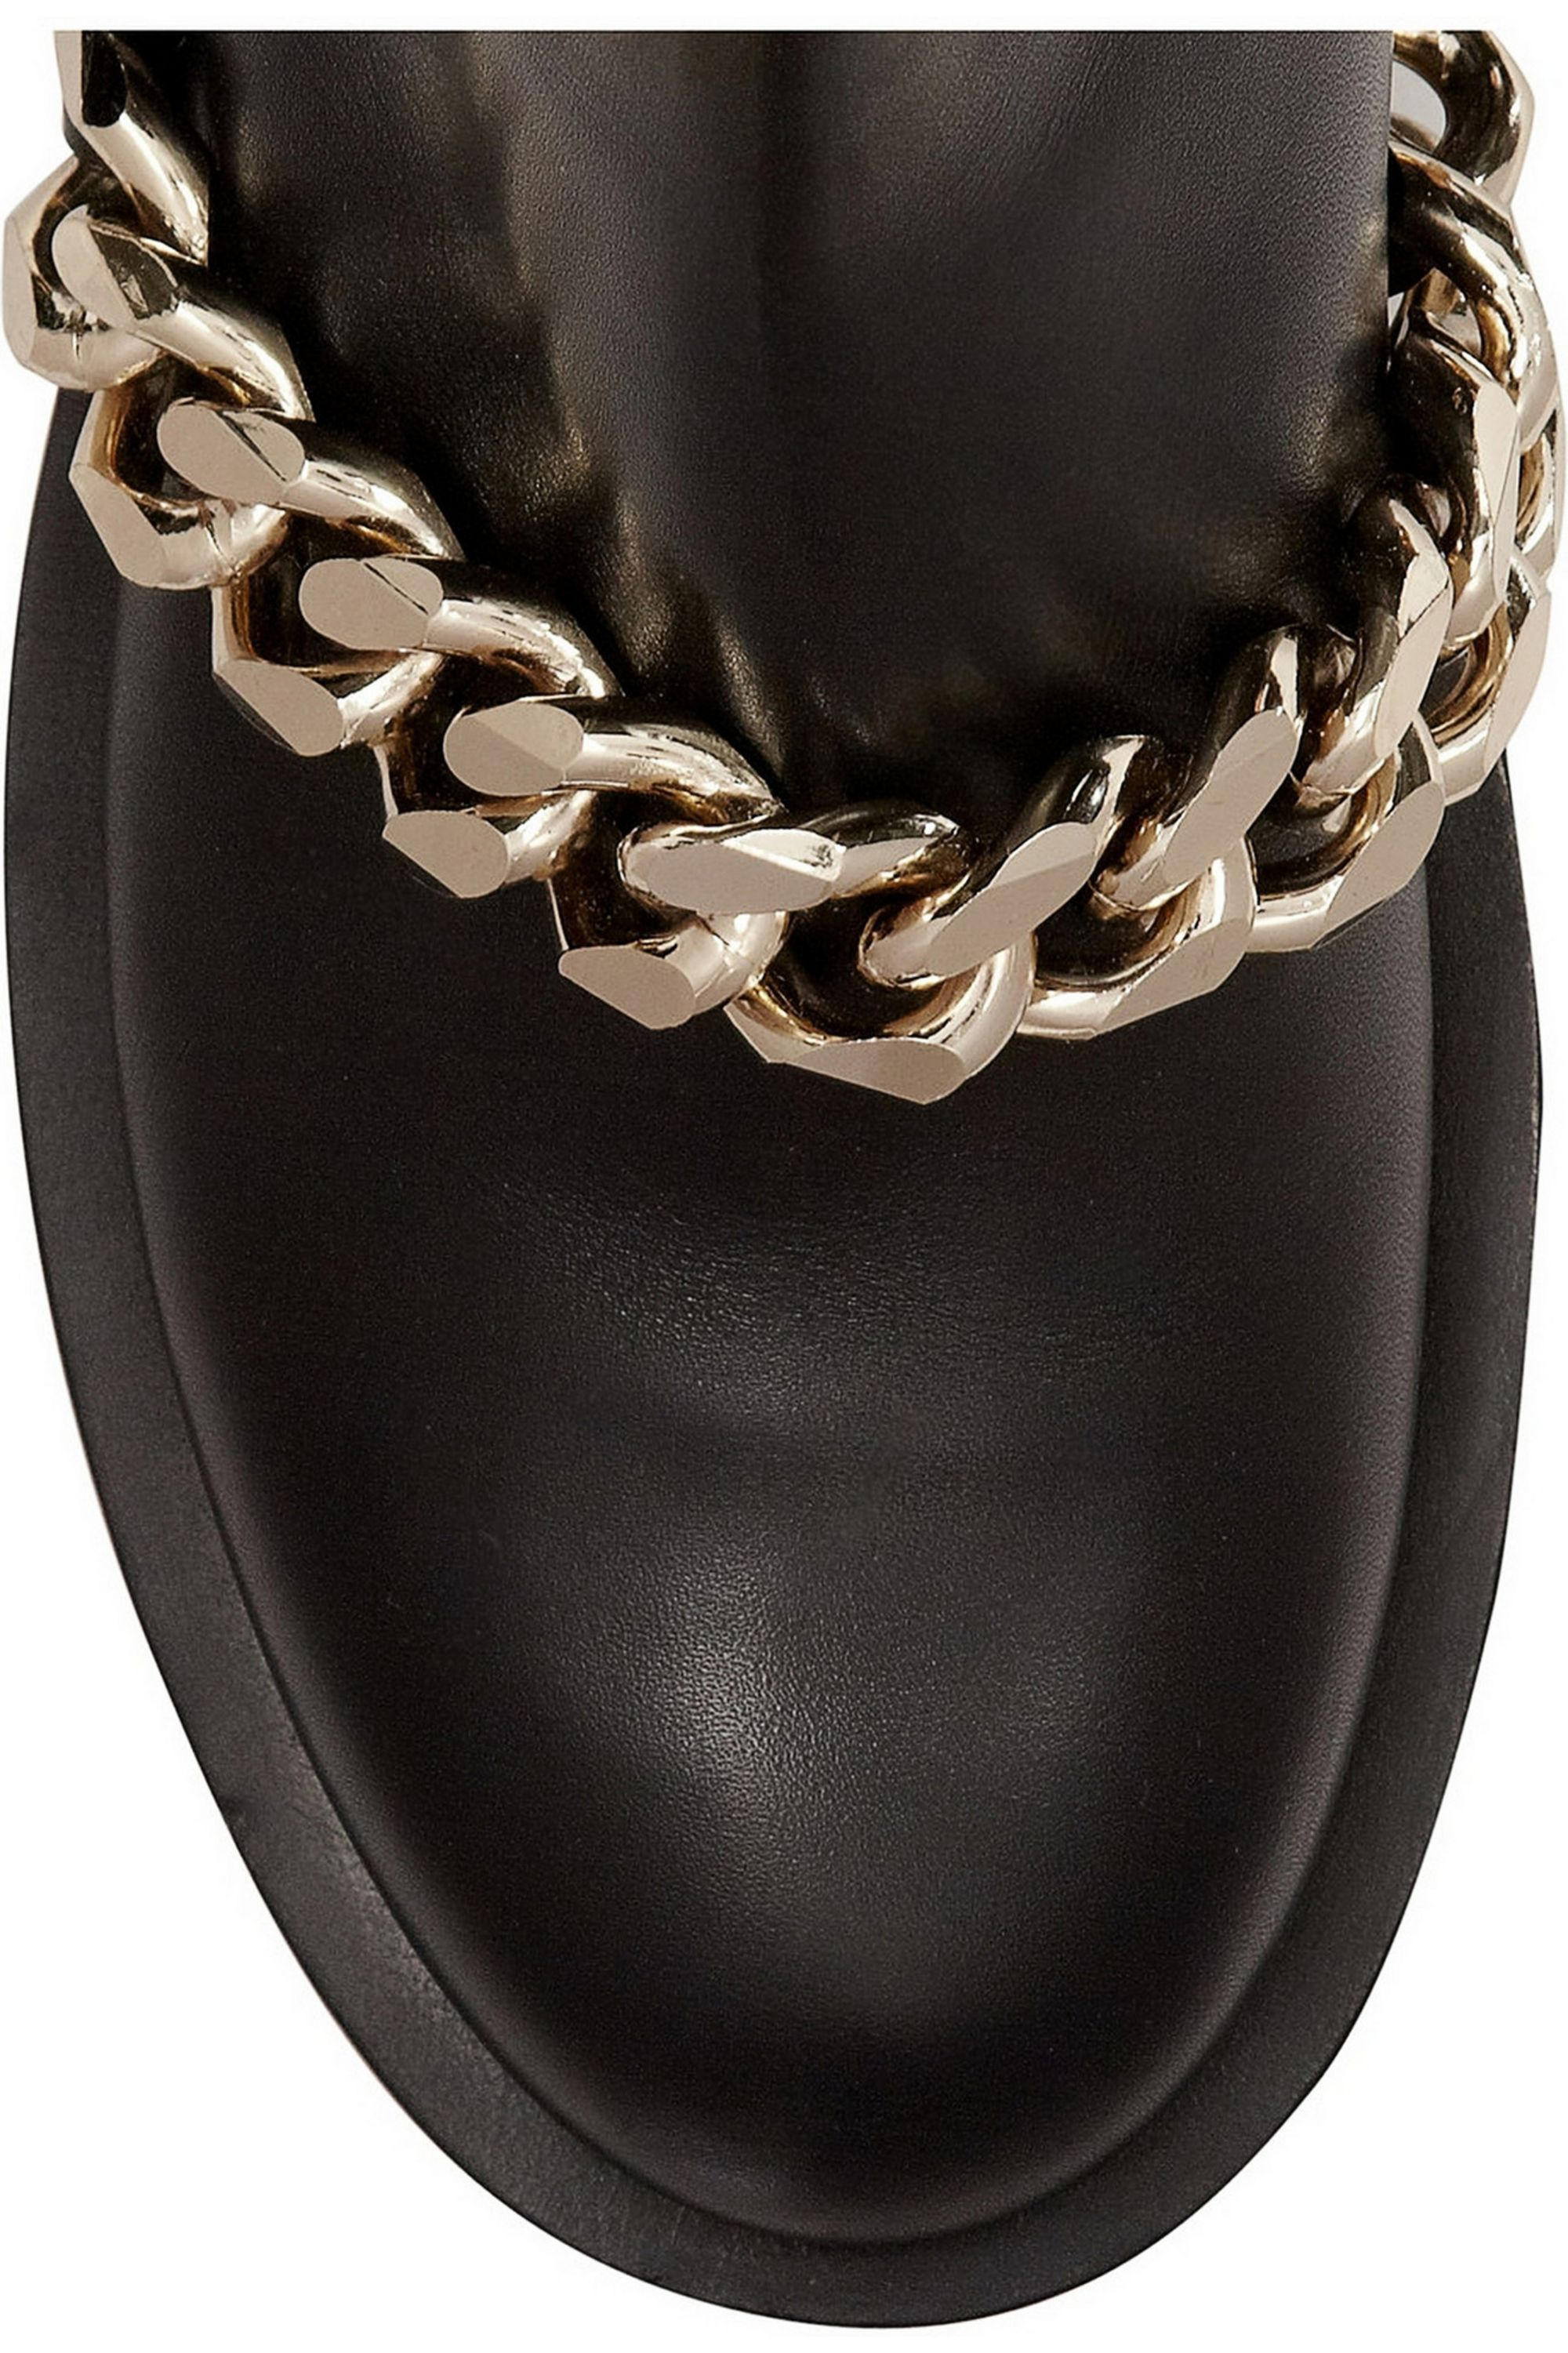 Givenchy Ankle boots with gold metal chain in black leather